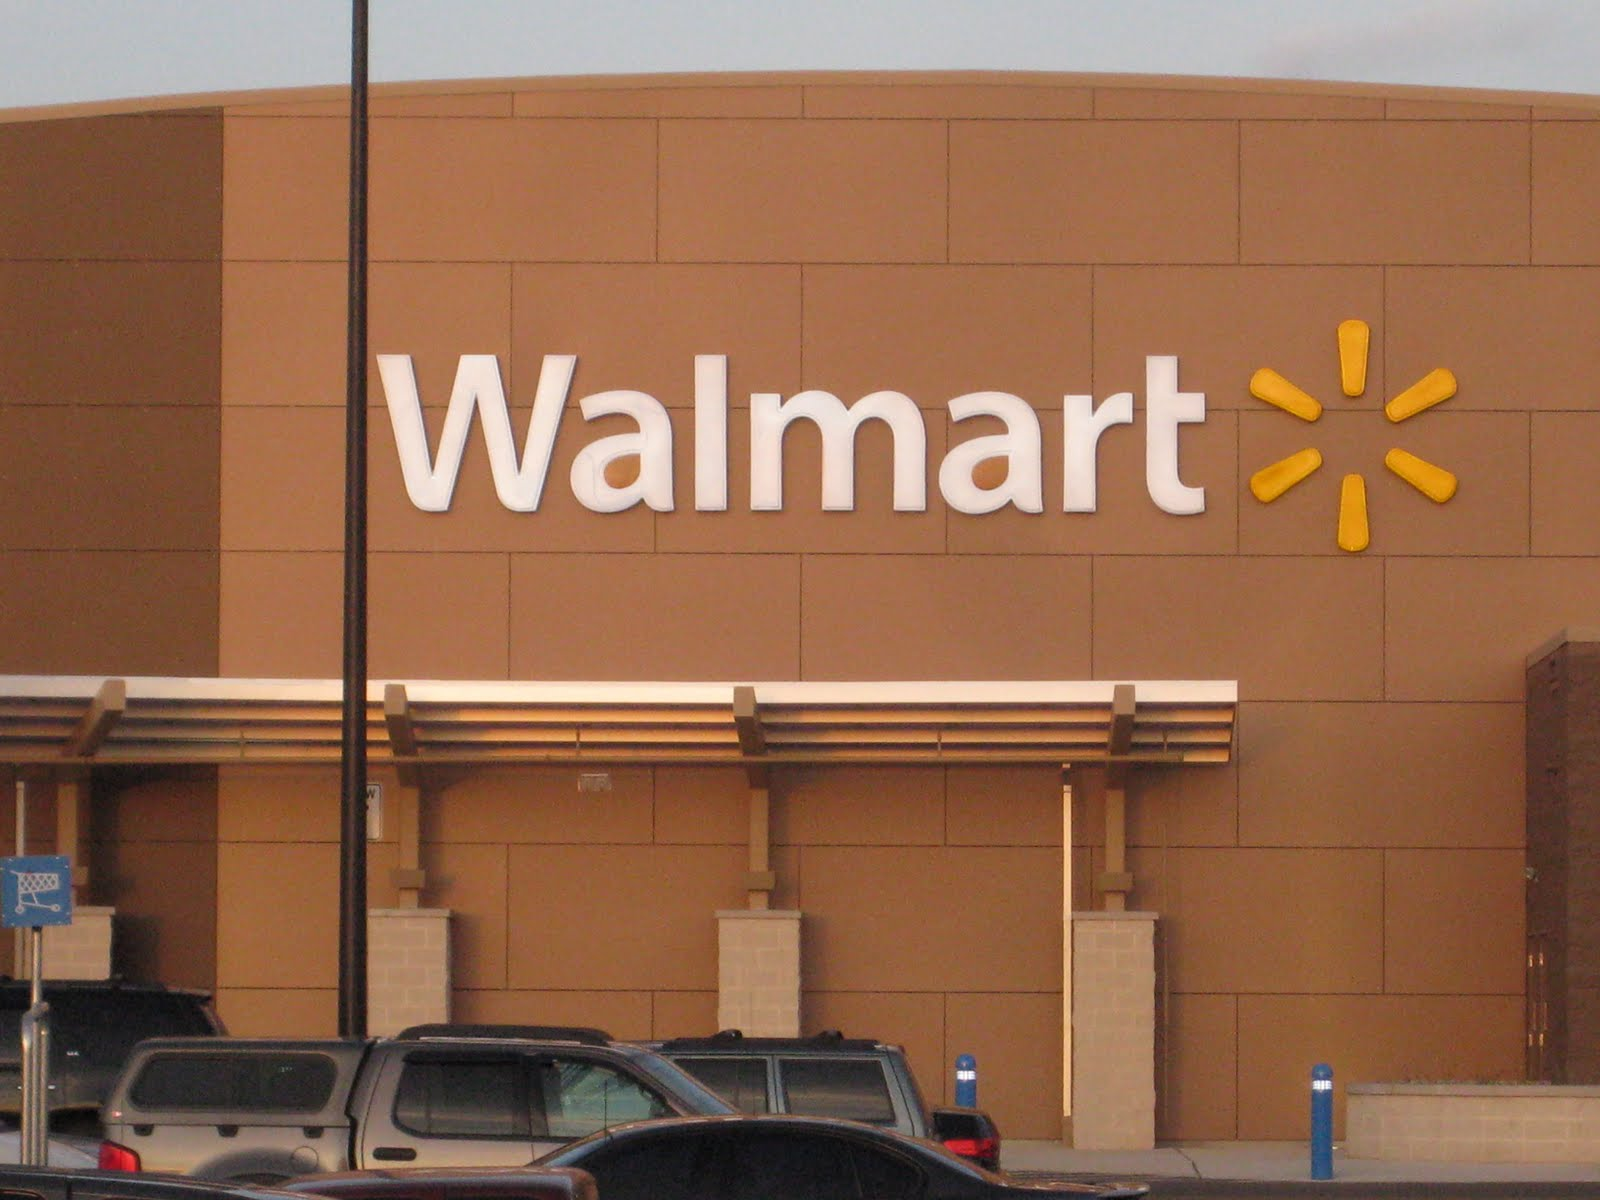 walmart union Compare western union with walmart-2-walmart to discover how they work when transferring money to friends and family in the us or overseas who has better fees and services.